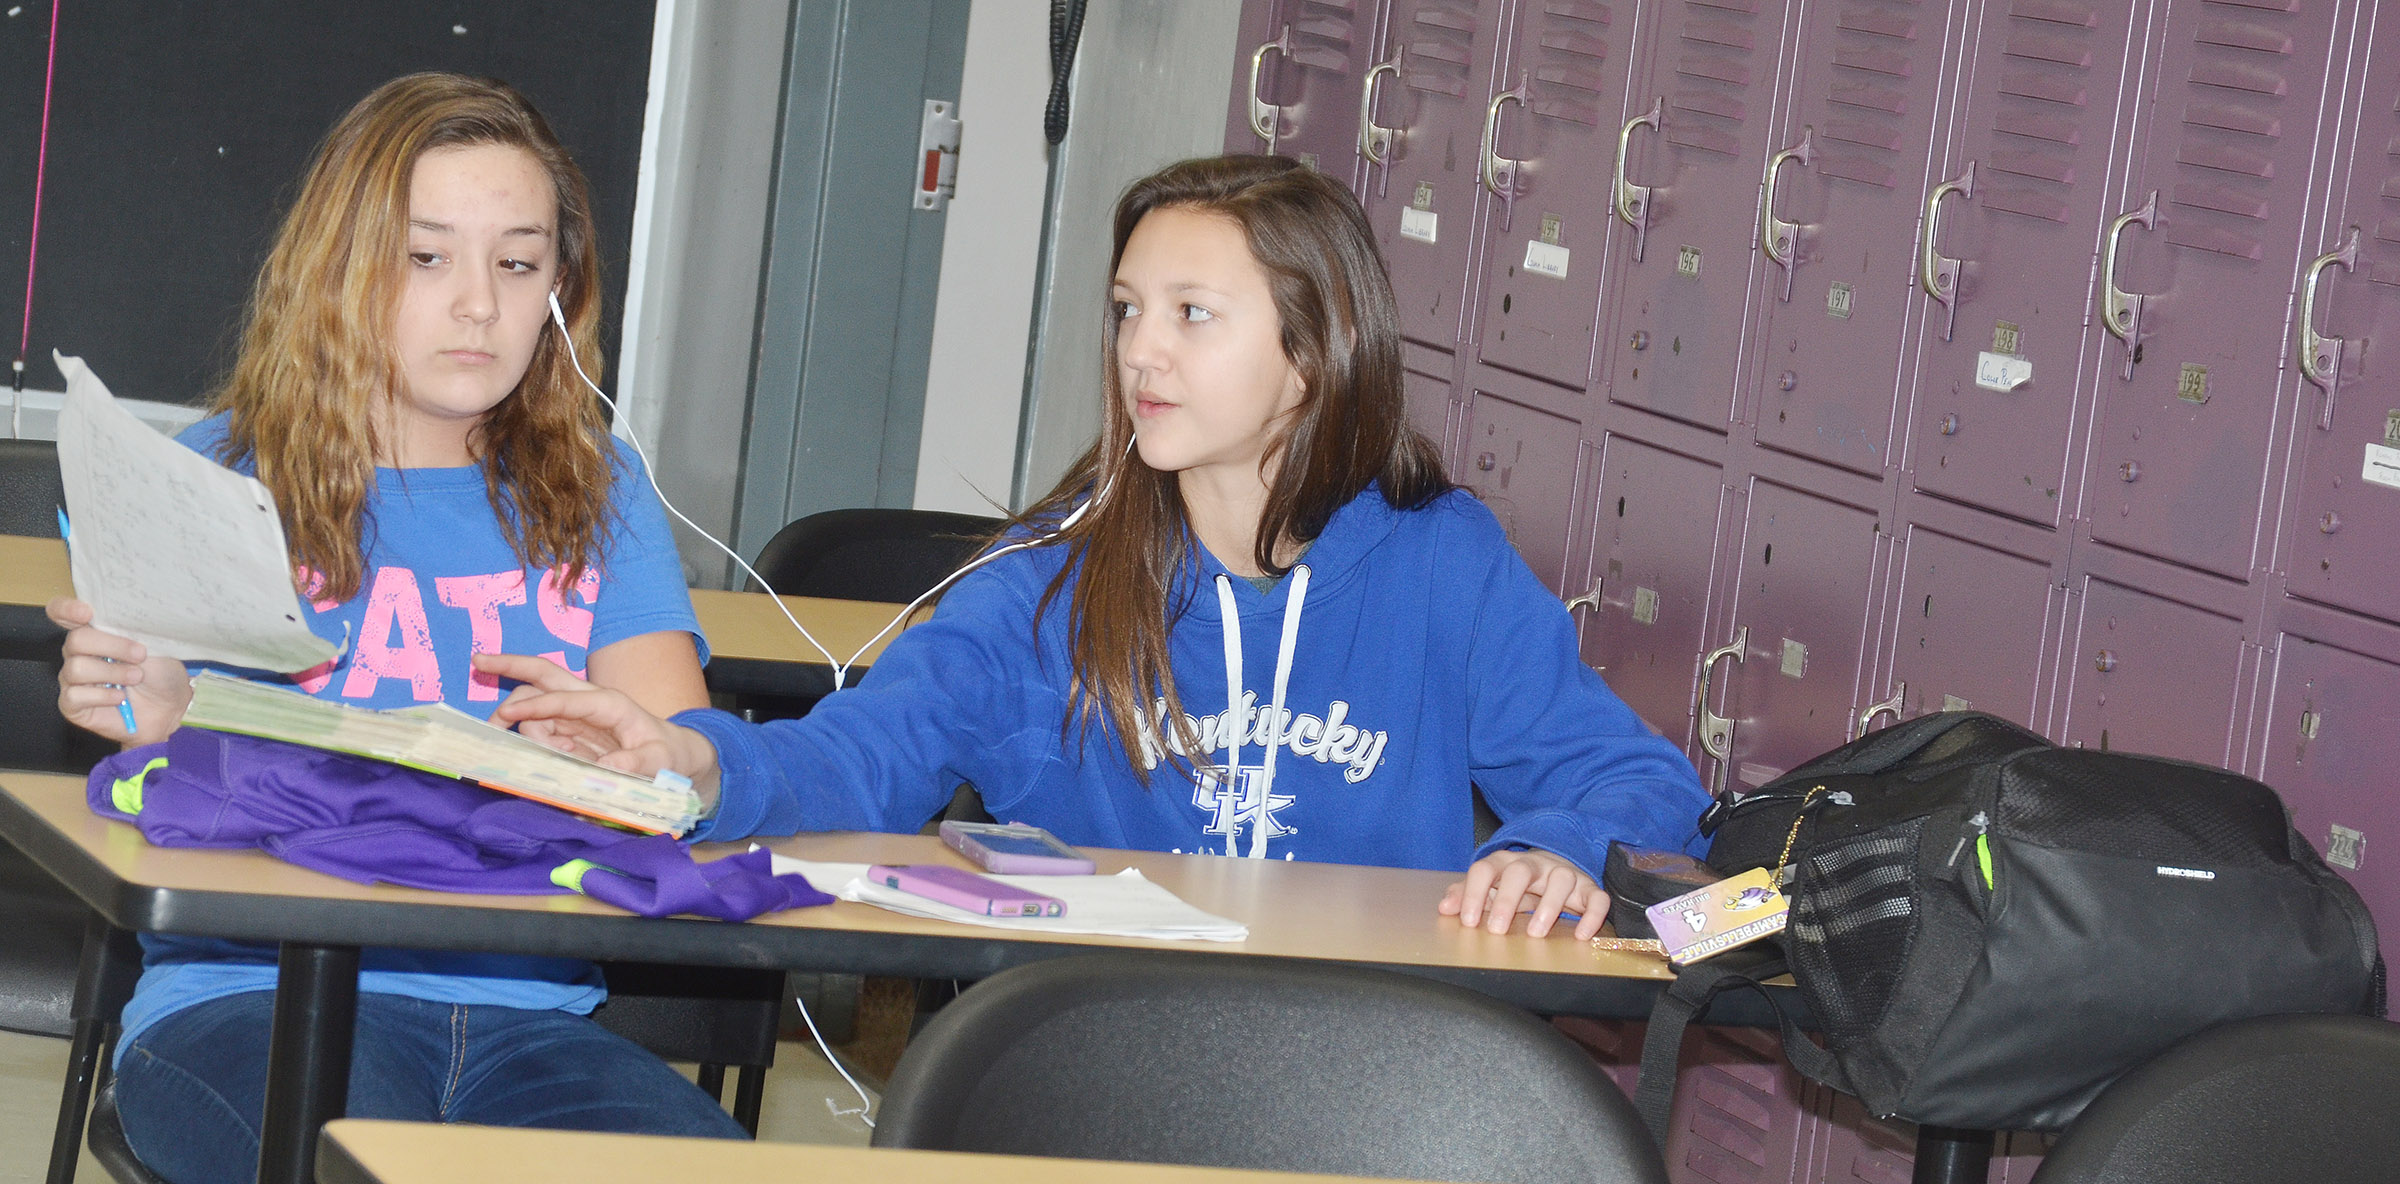 CMS seventh-graders Briana Davis, at left, and Bri Hayes work together on an assignment.